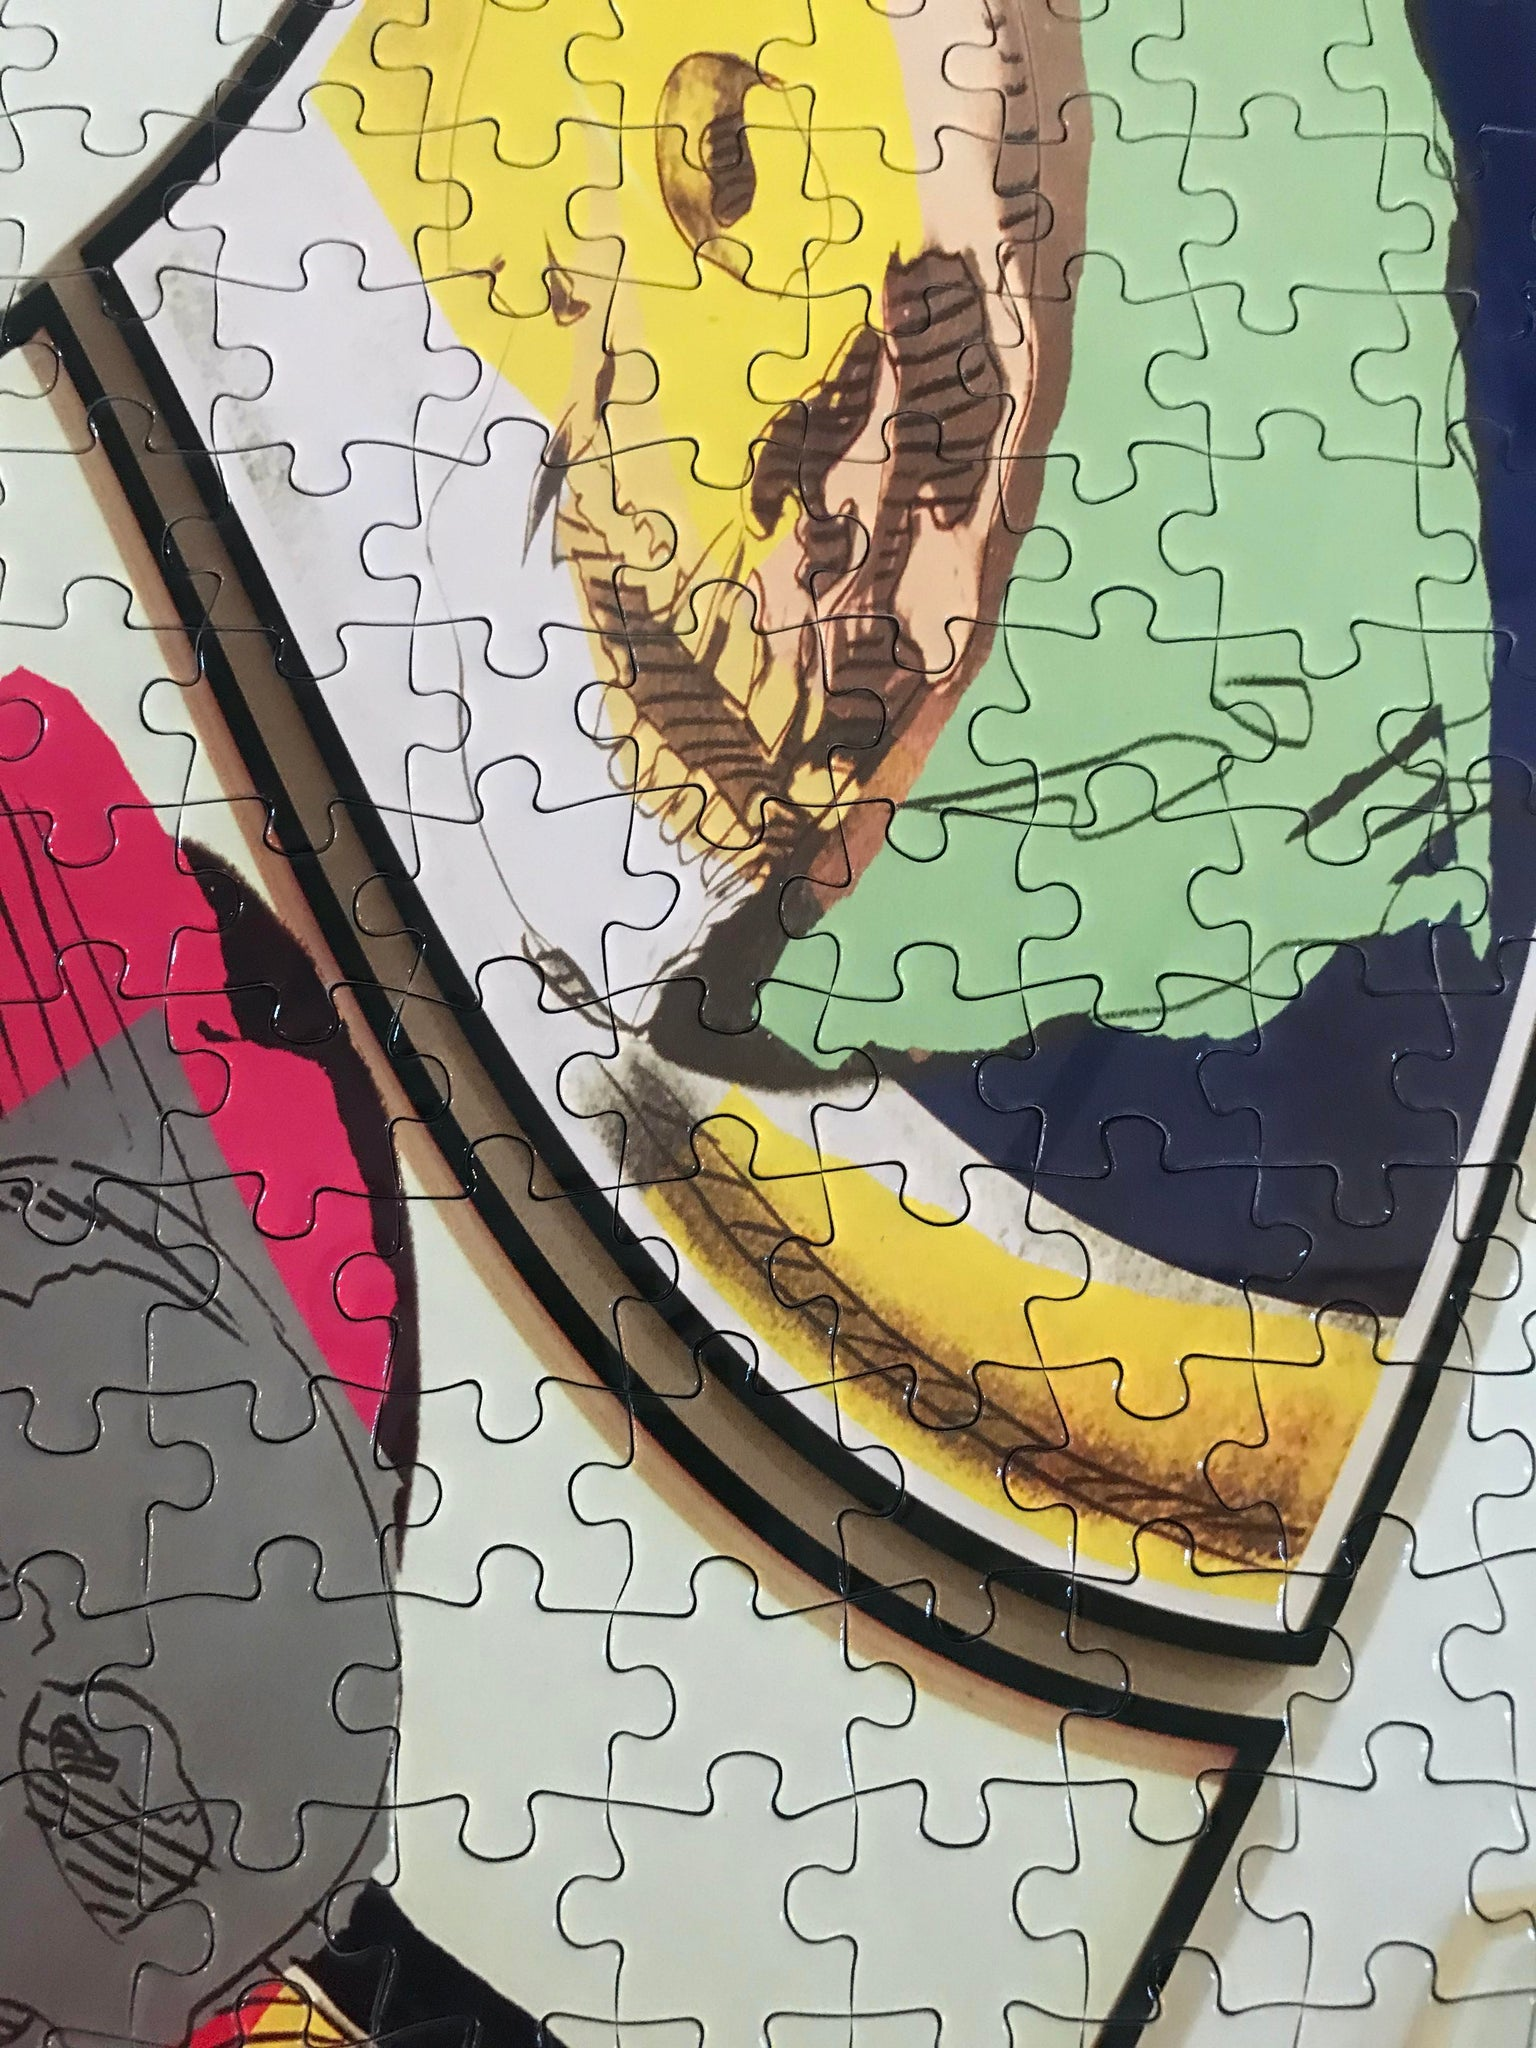 Artist Louise Lawler Puzzle: Unlimited Collector Edition Jigsaw Puzzle